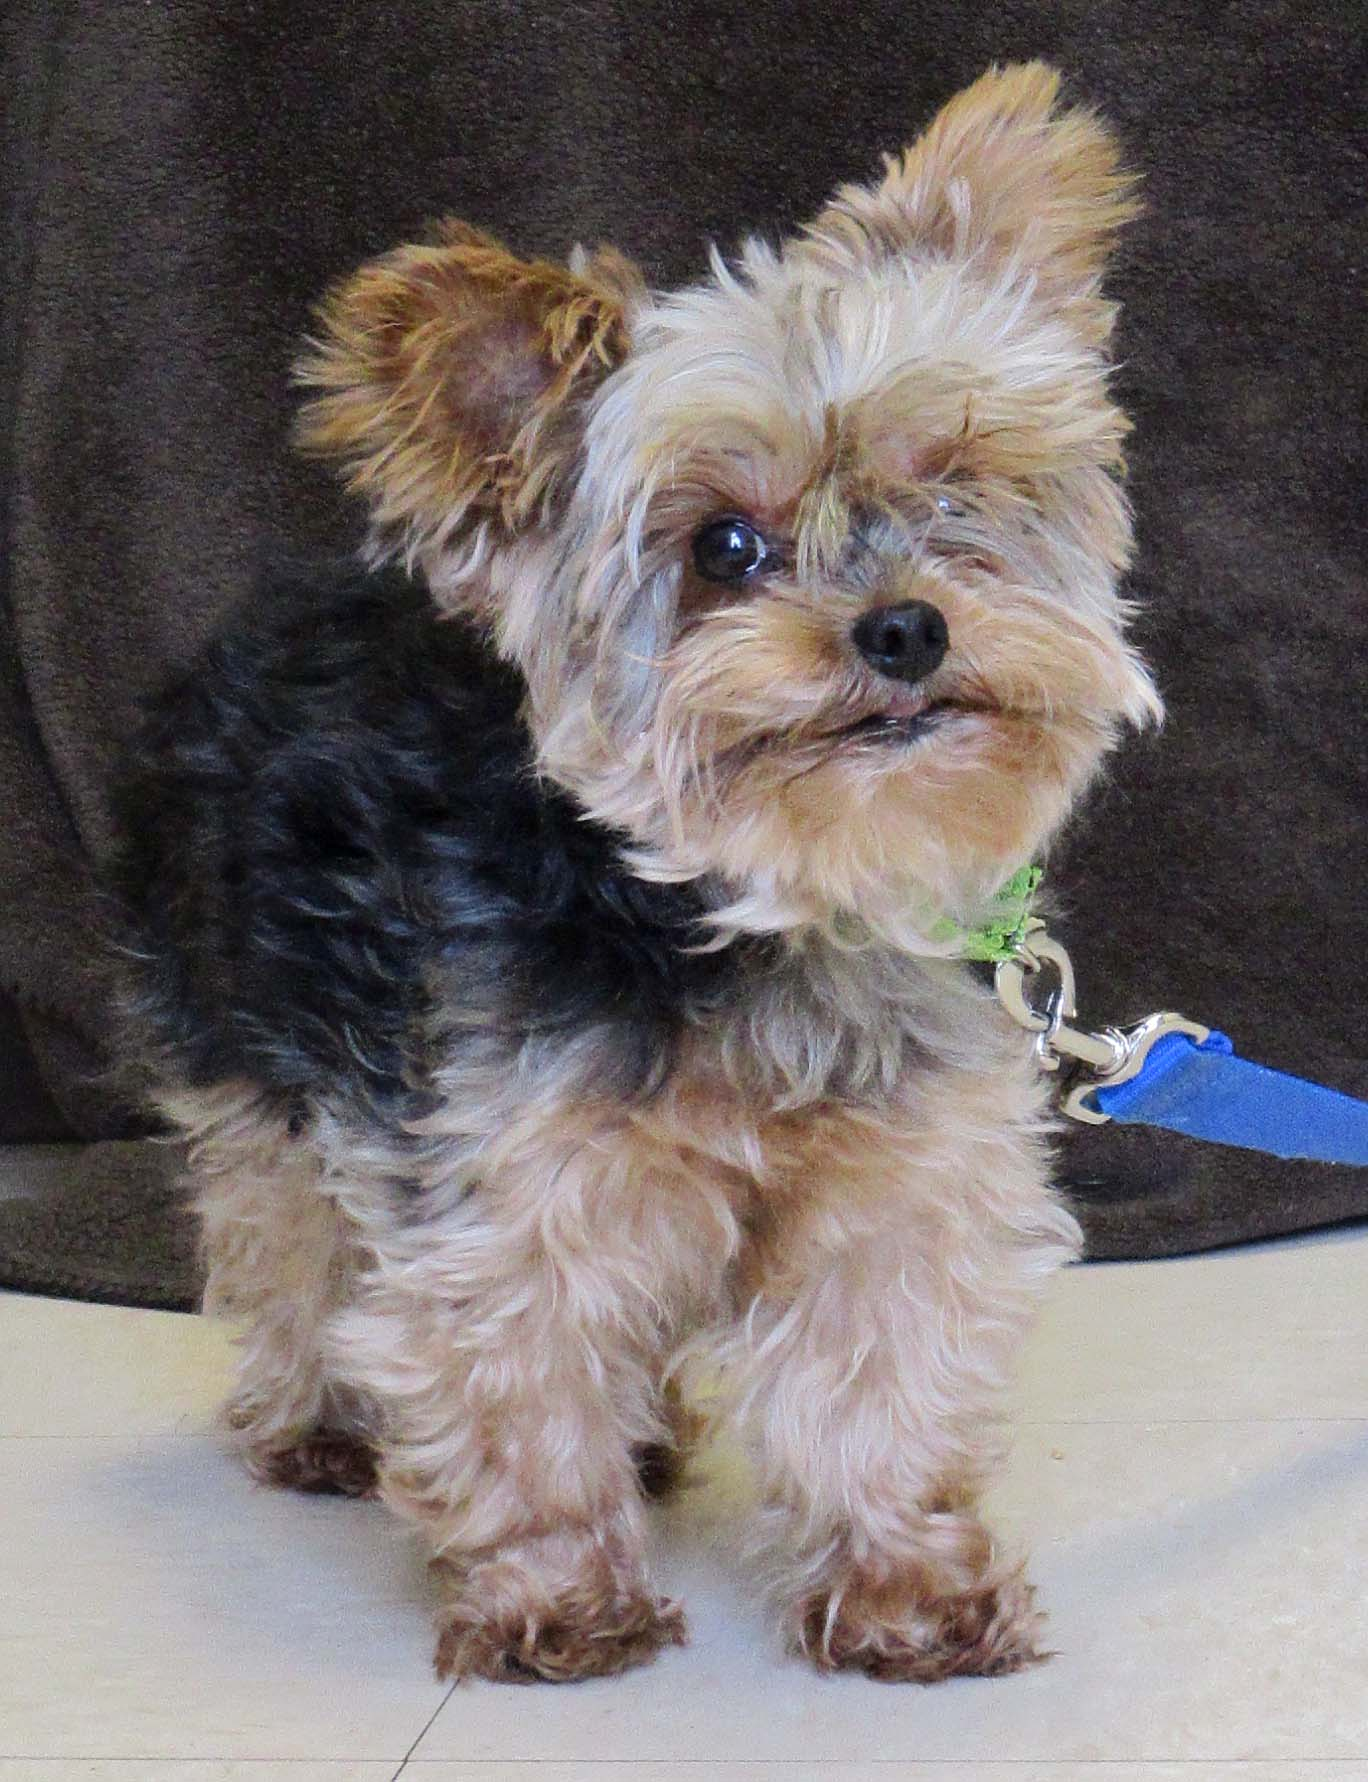 Milo is an 8 year old Yorkshire Terrier. He would do best in a home with older children as he can be scared of quick movement, loud noises, and even new places. Once he warms up to new people, he is a cuddly boy.